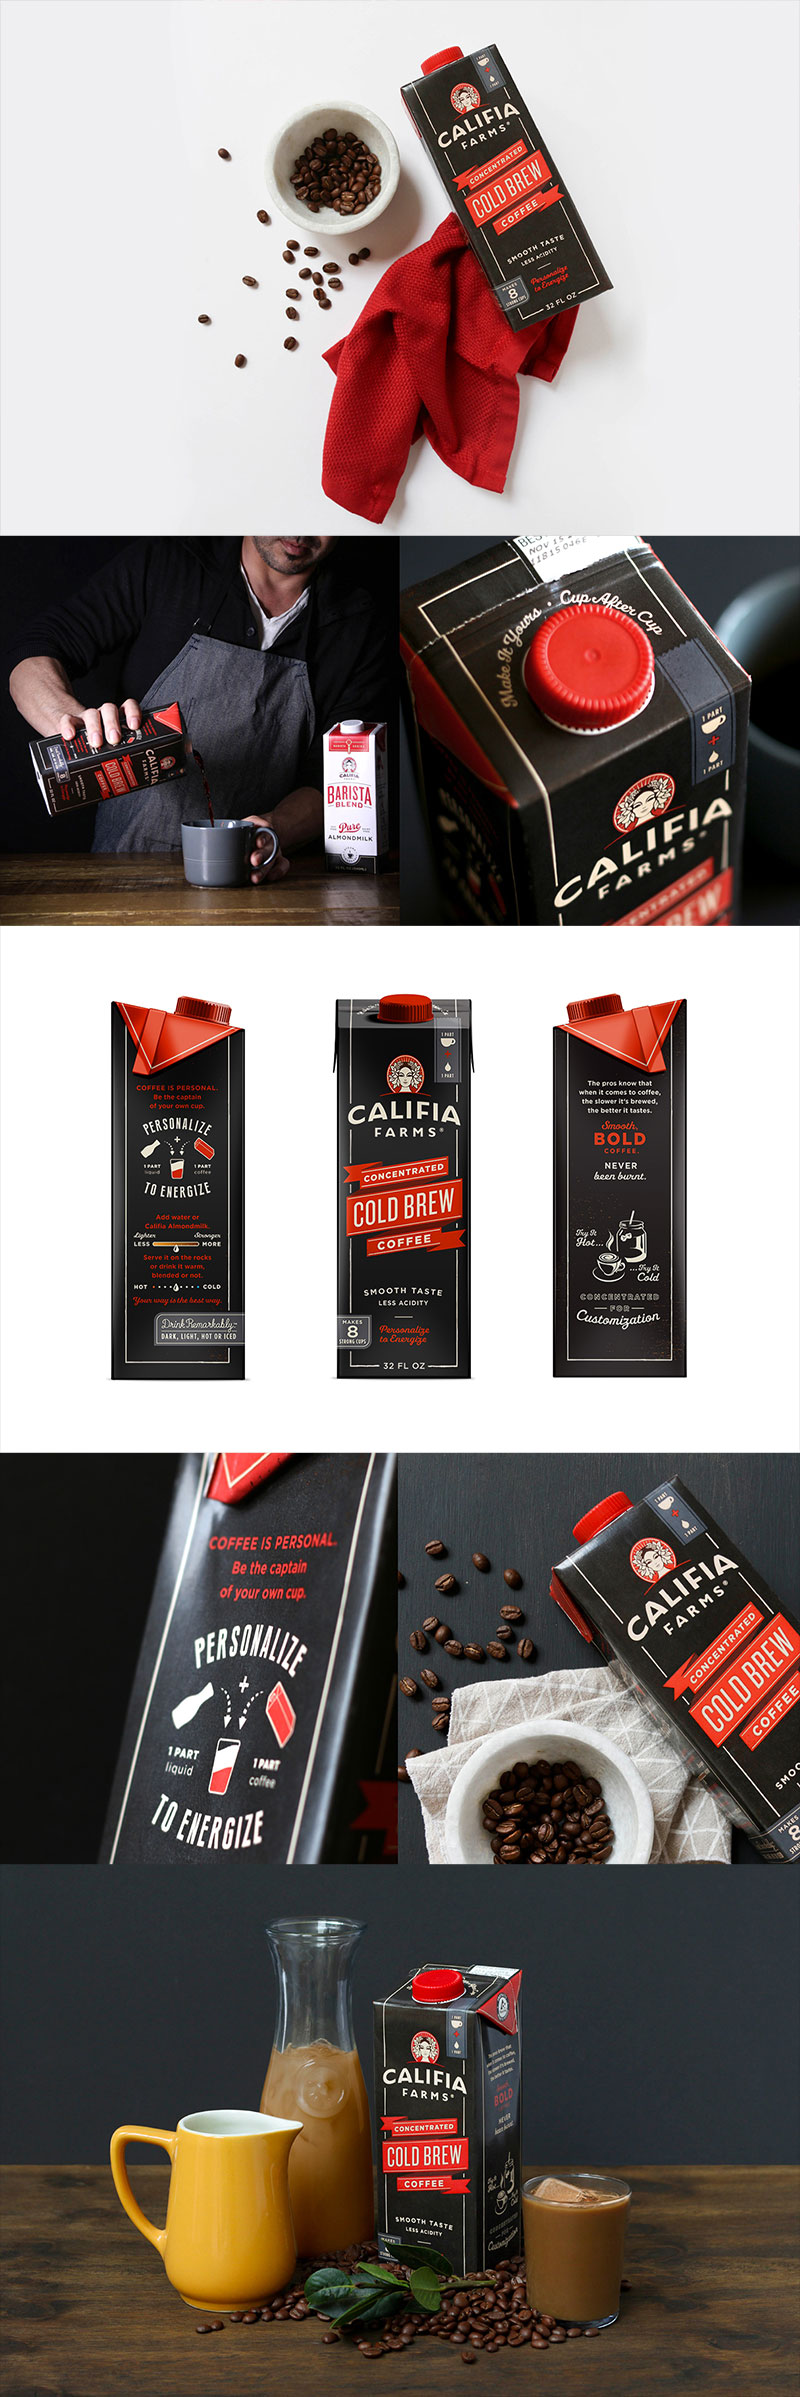 Califia Farms - Concentrated Cold Brew Coffee by Farm Design